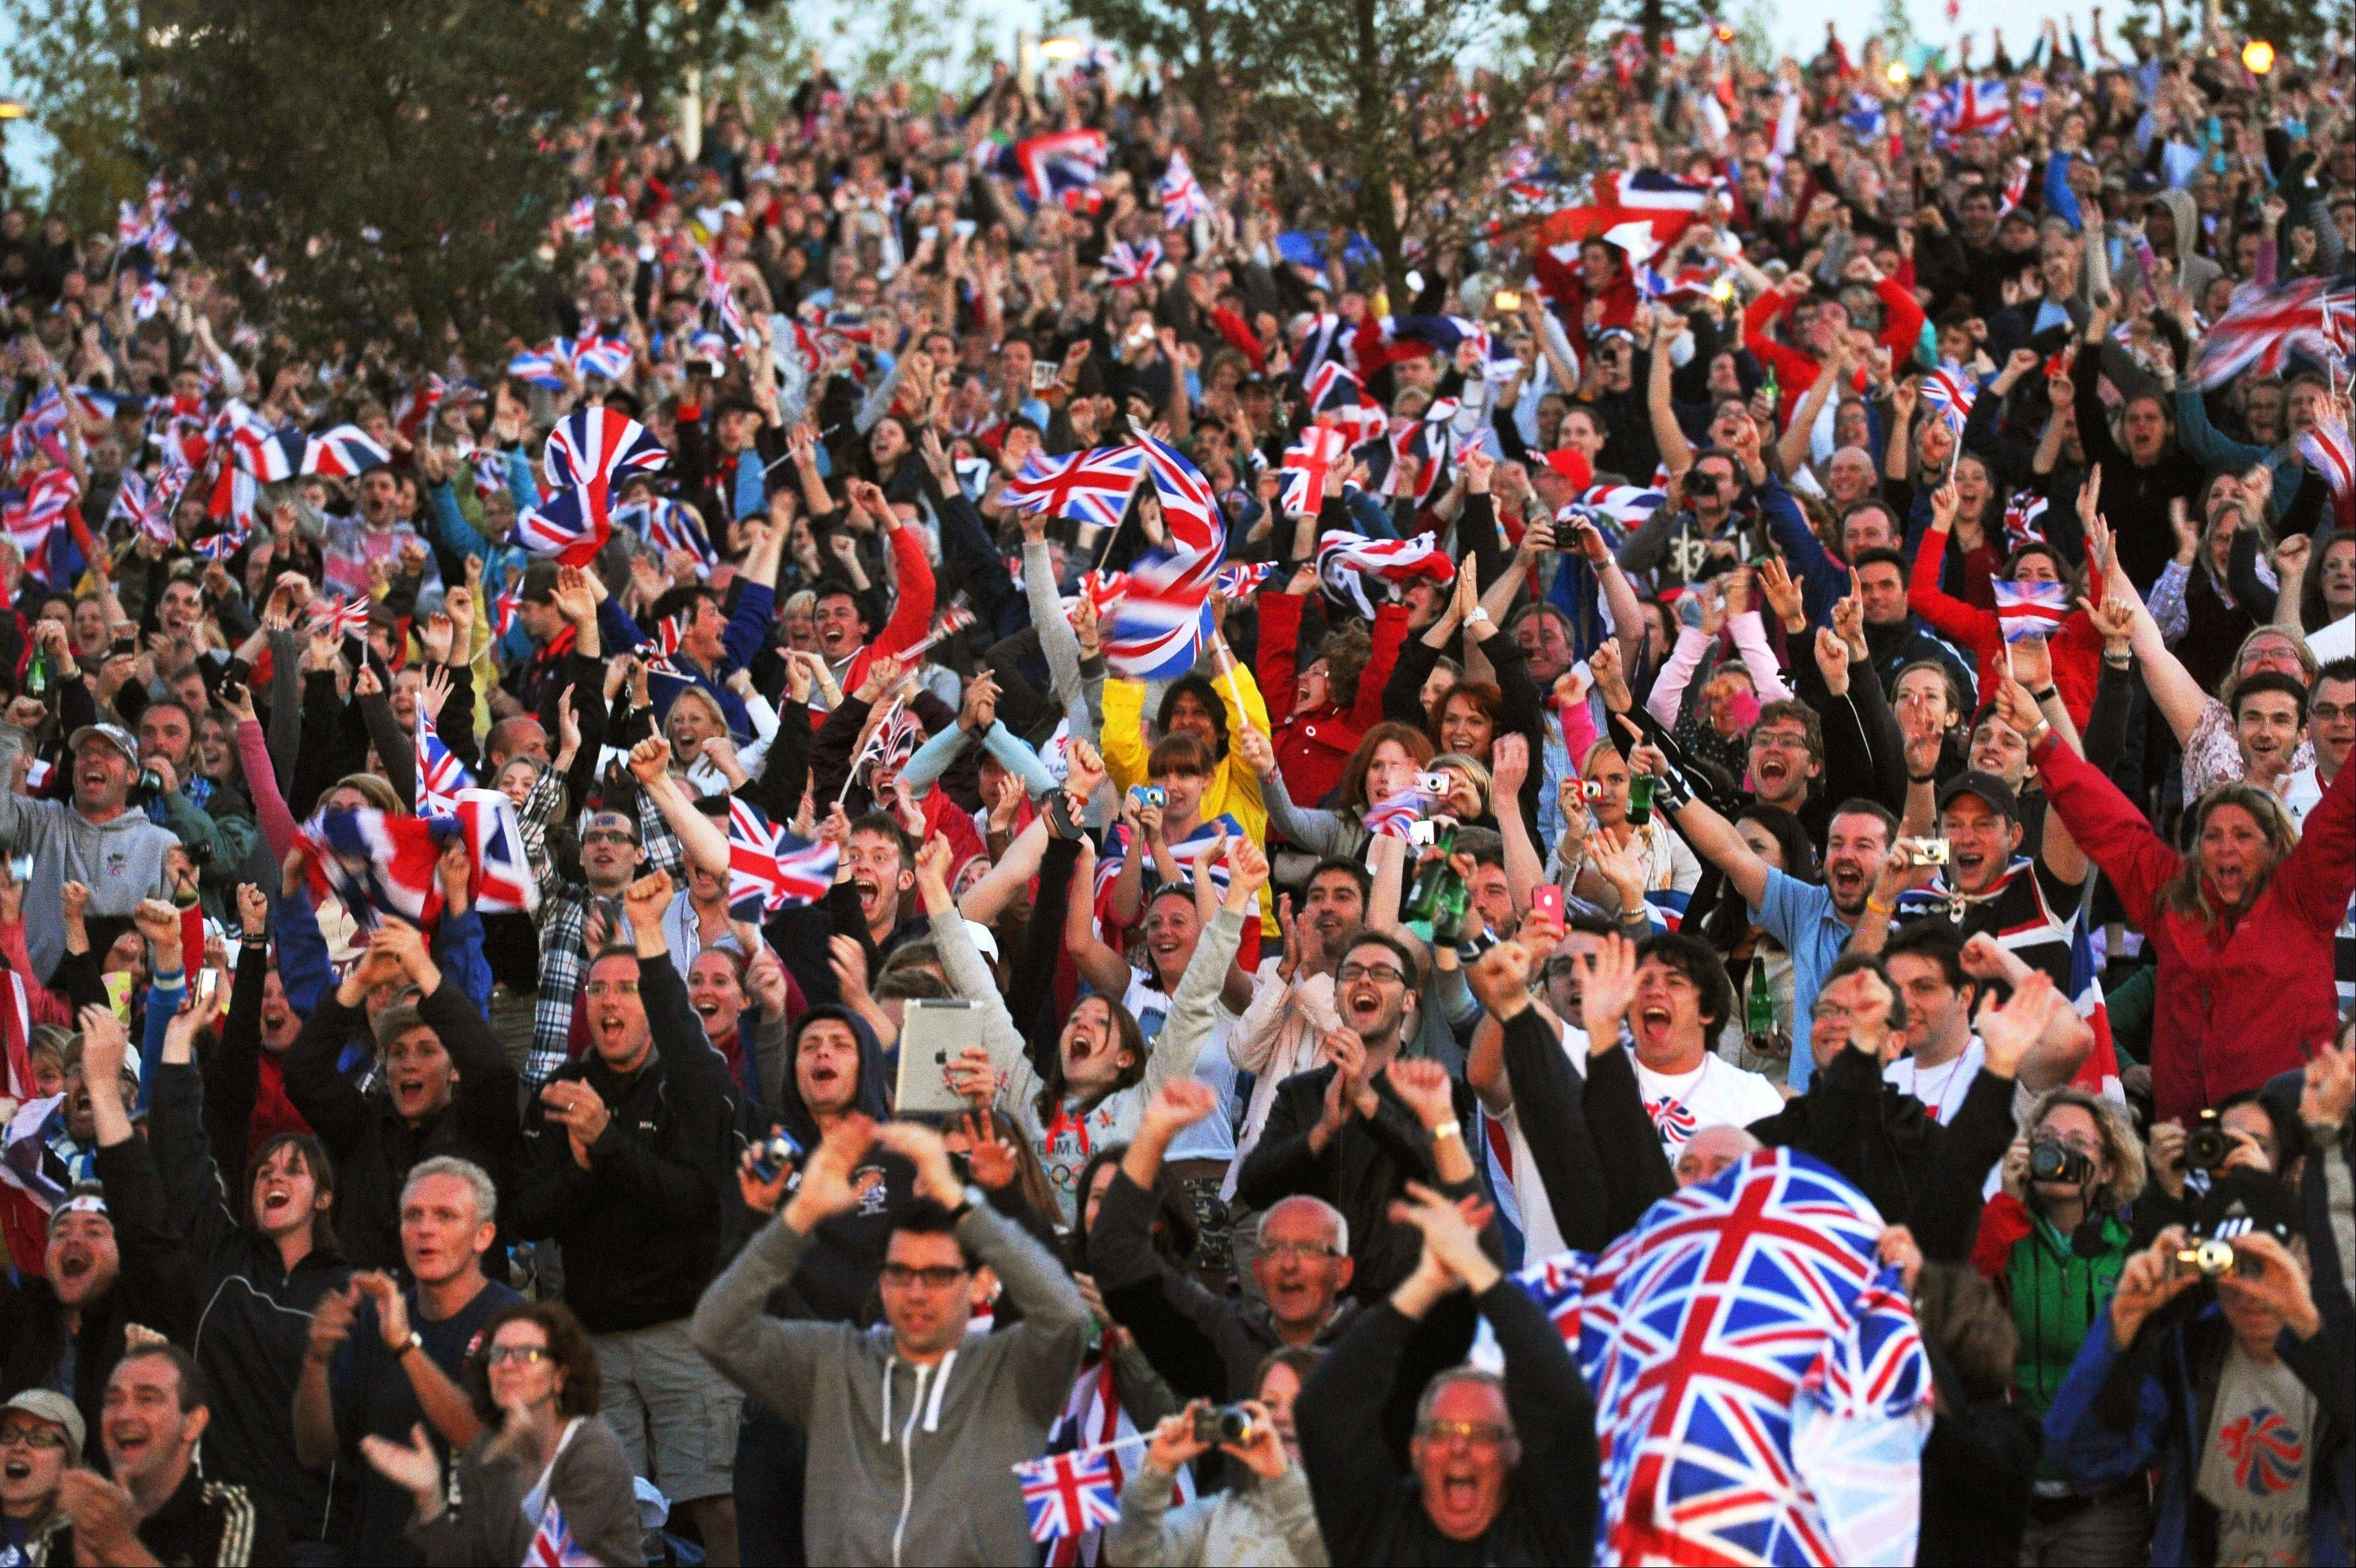 Crowds cheer as they watch Great Britain's Jessica Ennis win gold in the women's heptathlon on the big screen in the Olympic Park on Saturday.